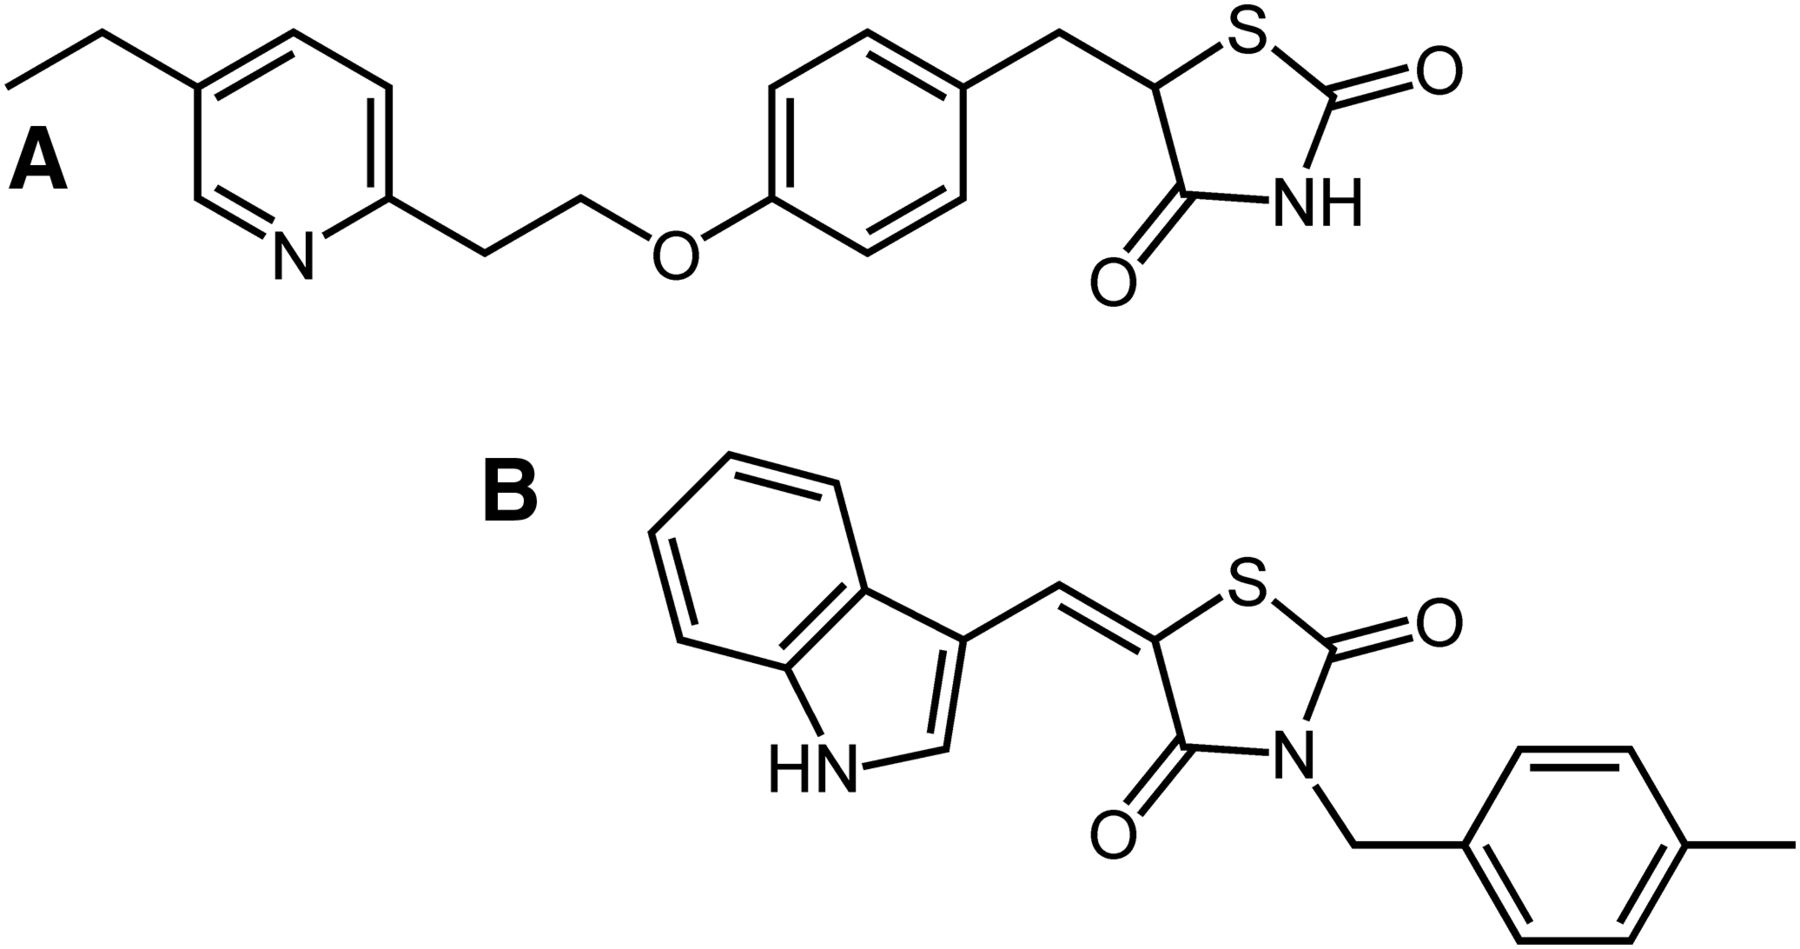 New Pioglitazone Metabolites and Absence of Opened-Ring Metabolites